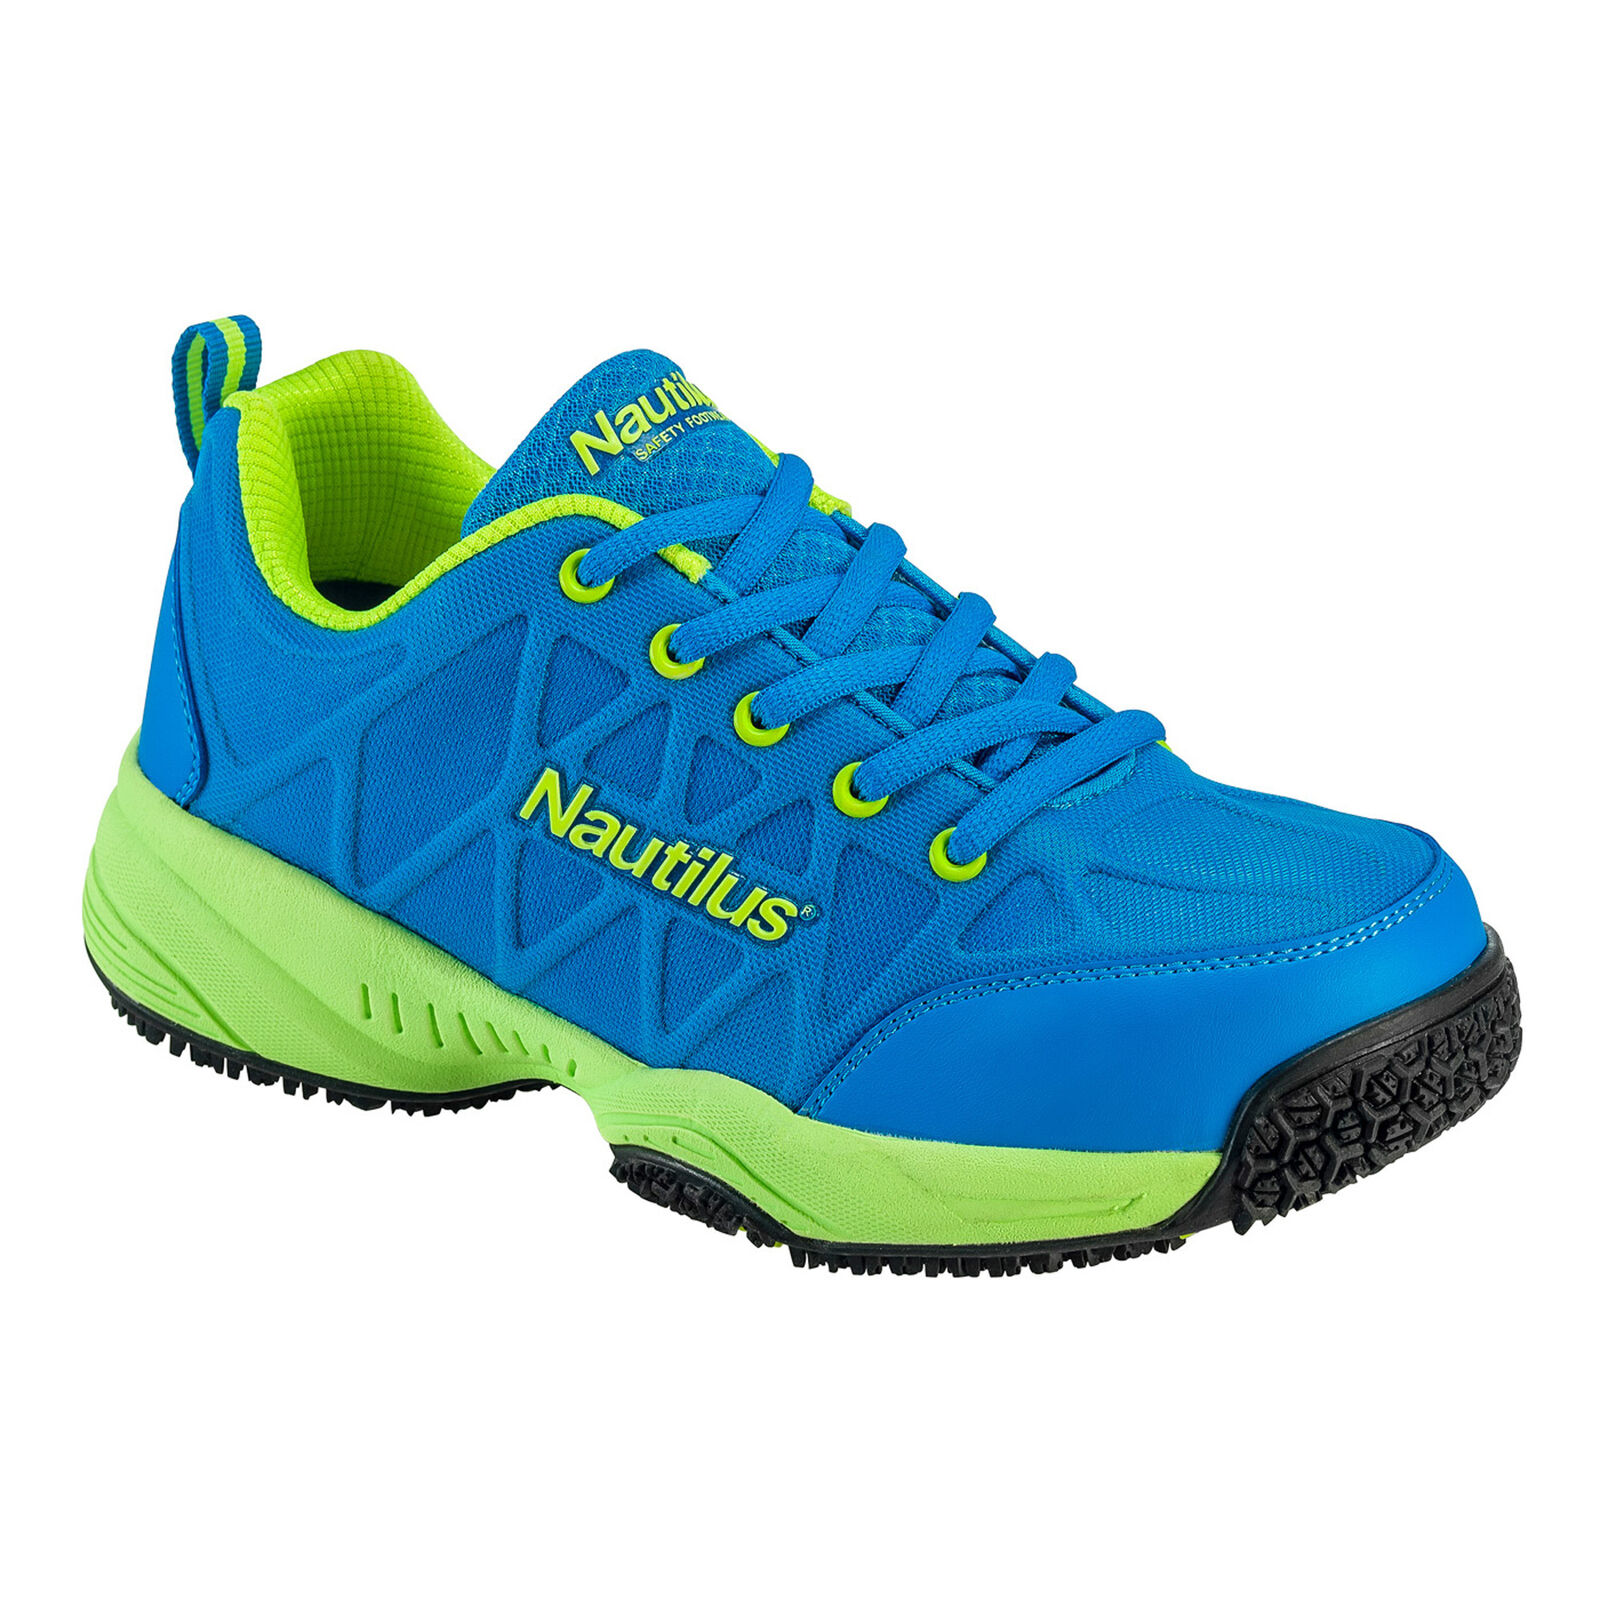 Nautilus Womens Composite Toe Athletic W bluee Action Leather shoes